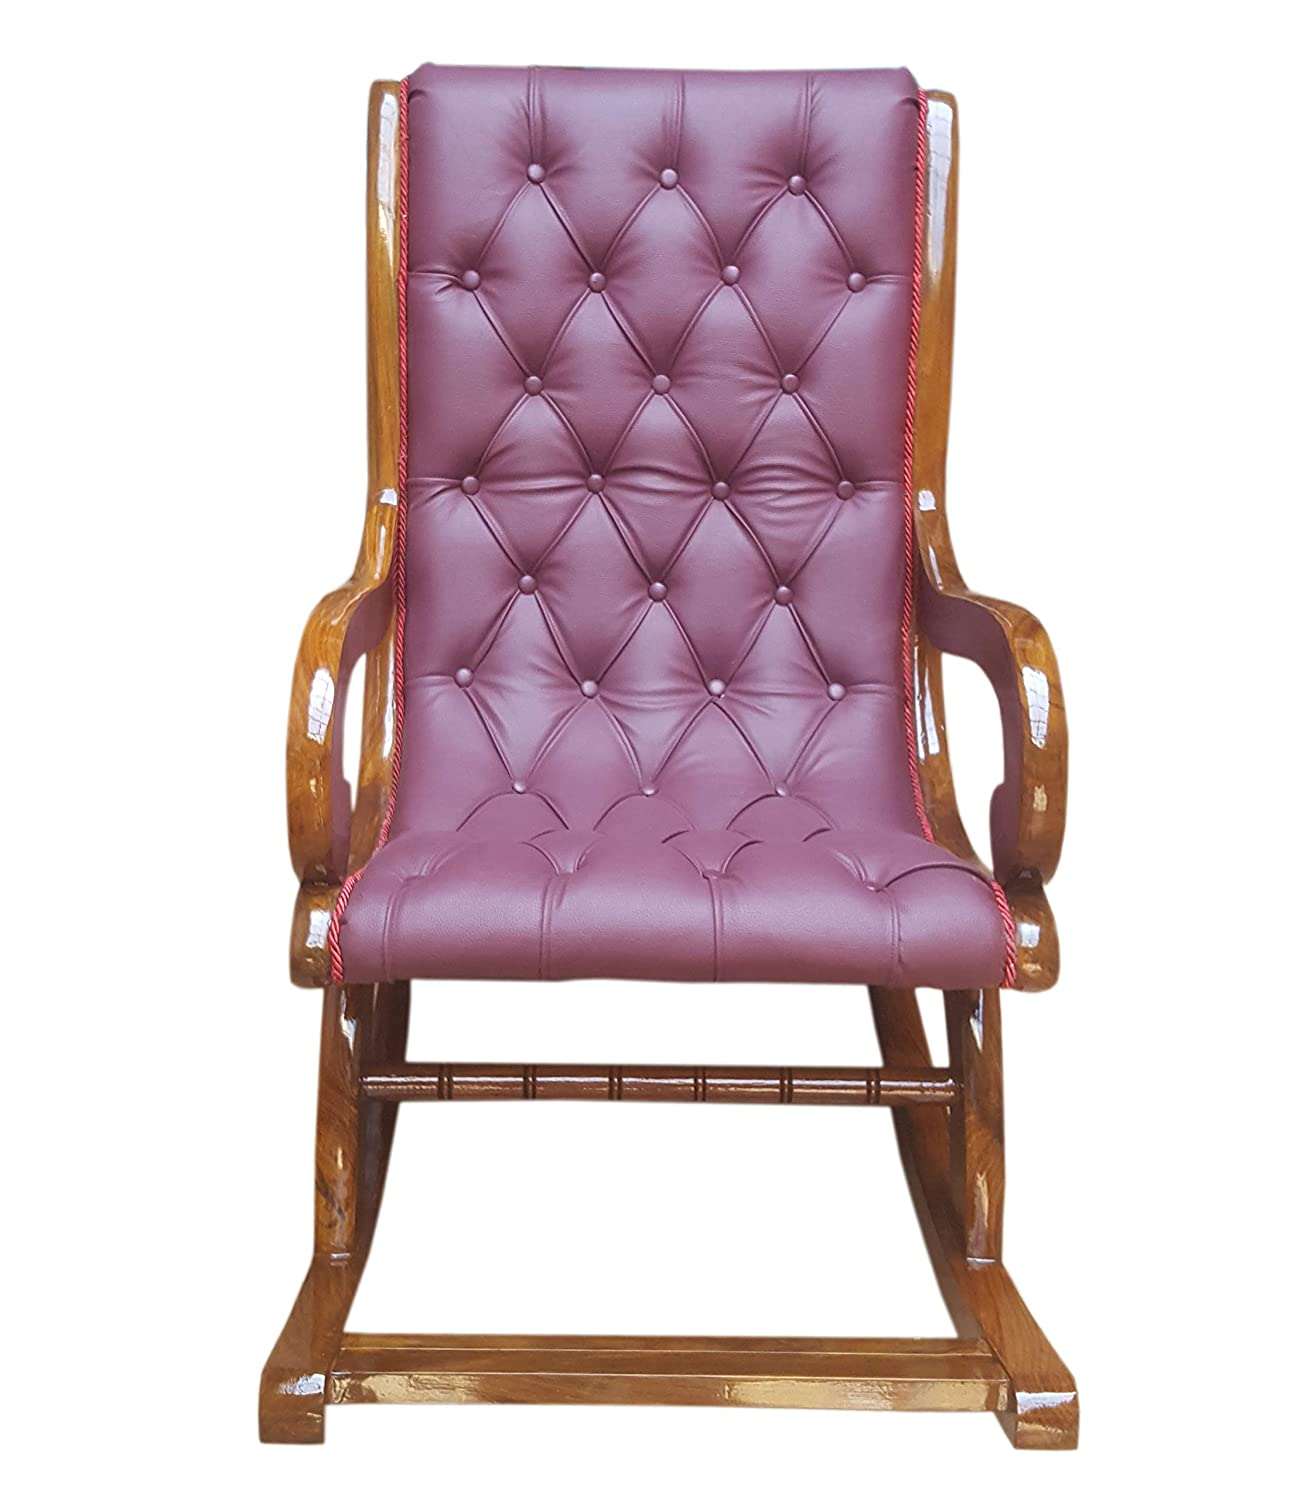 Marcik ROCKING CHAIR FOR LIVING ROOM OF SHEESHAM WOOD